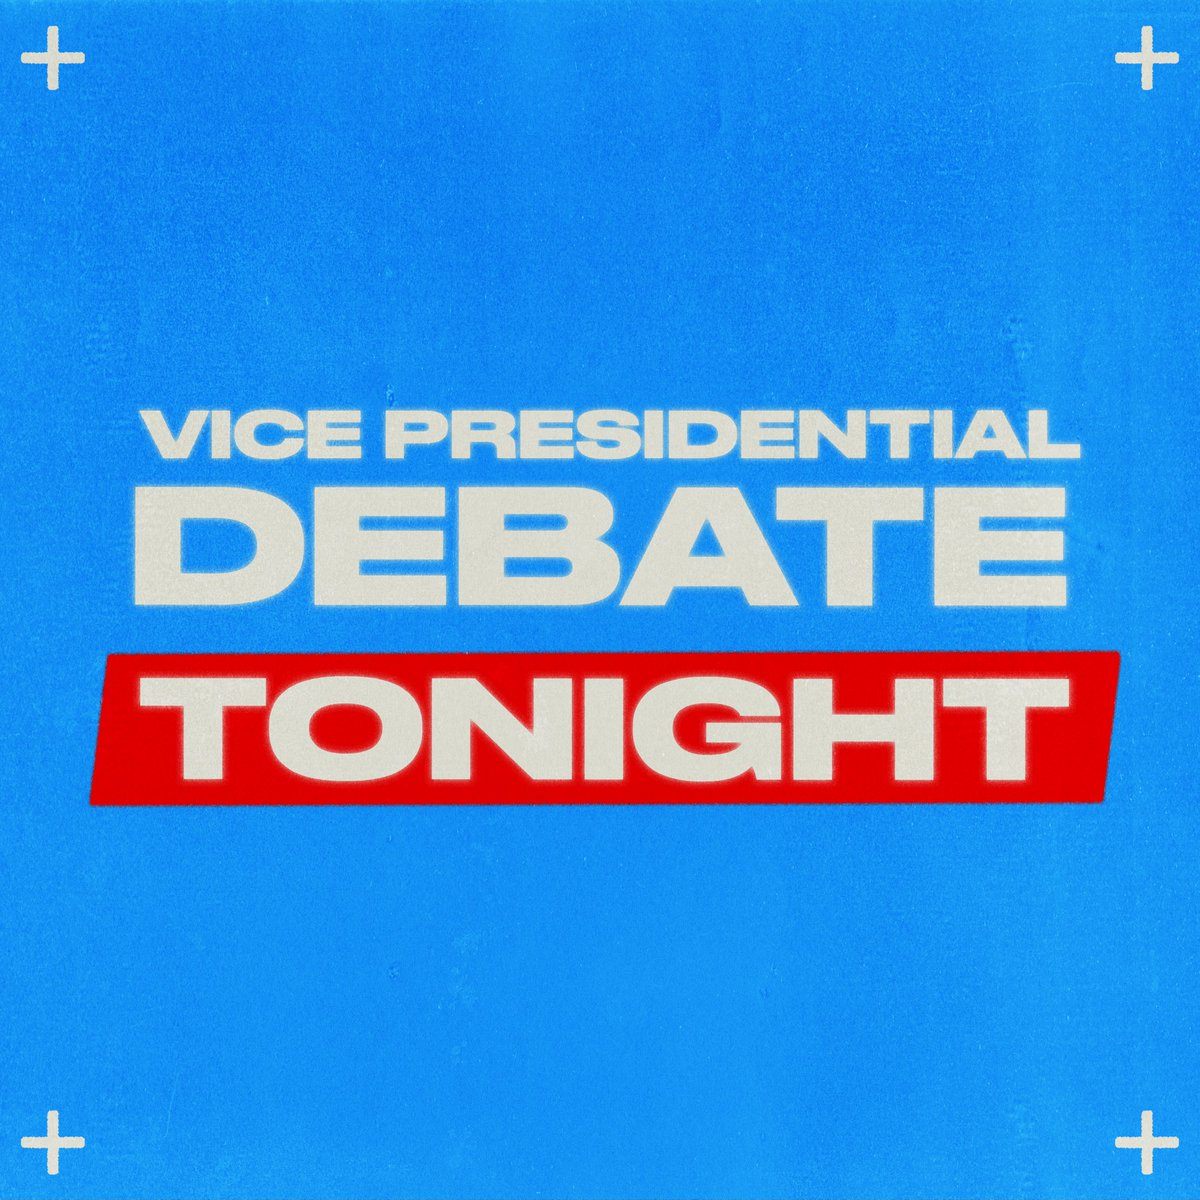 The Vice Presidential Debate is happening TONIGHT at 9pm ET!